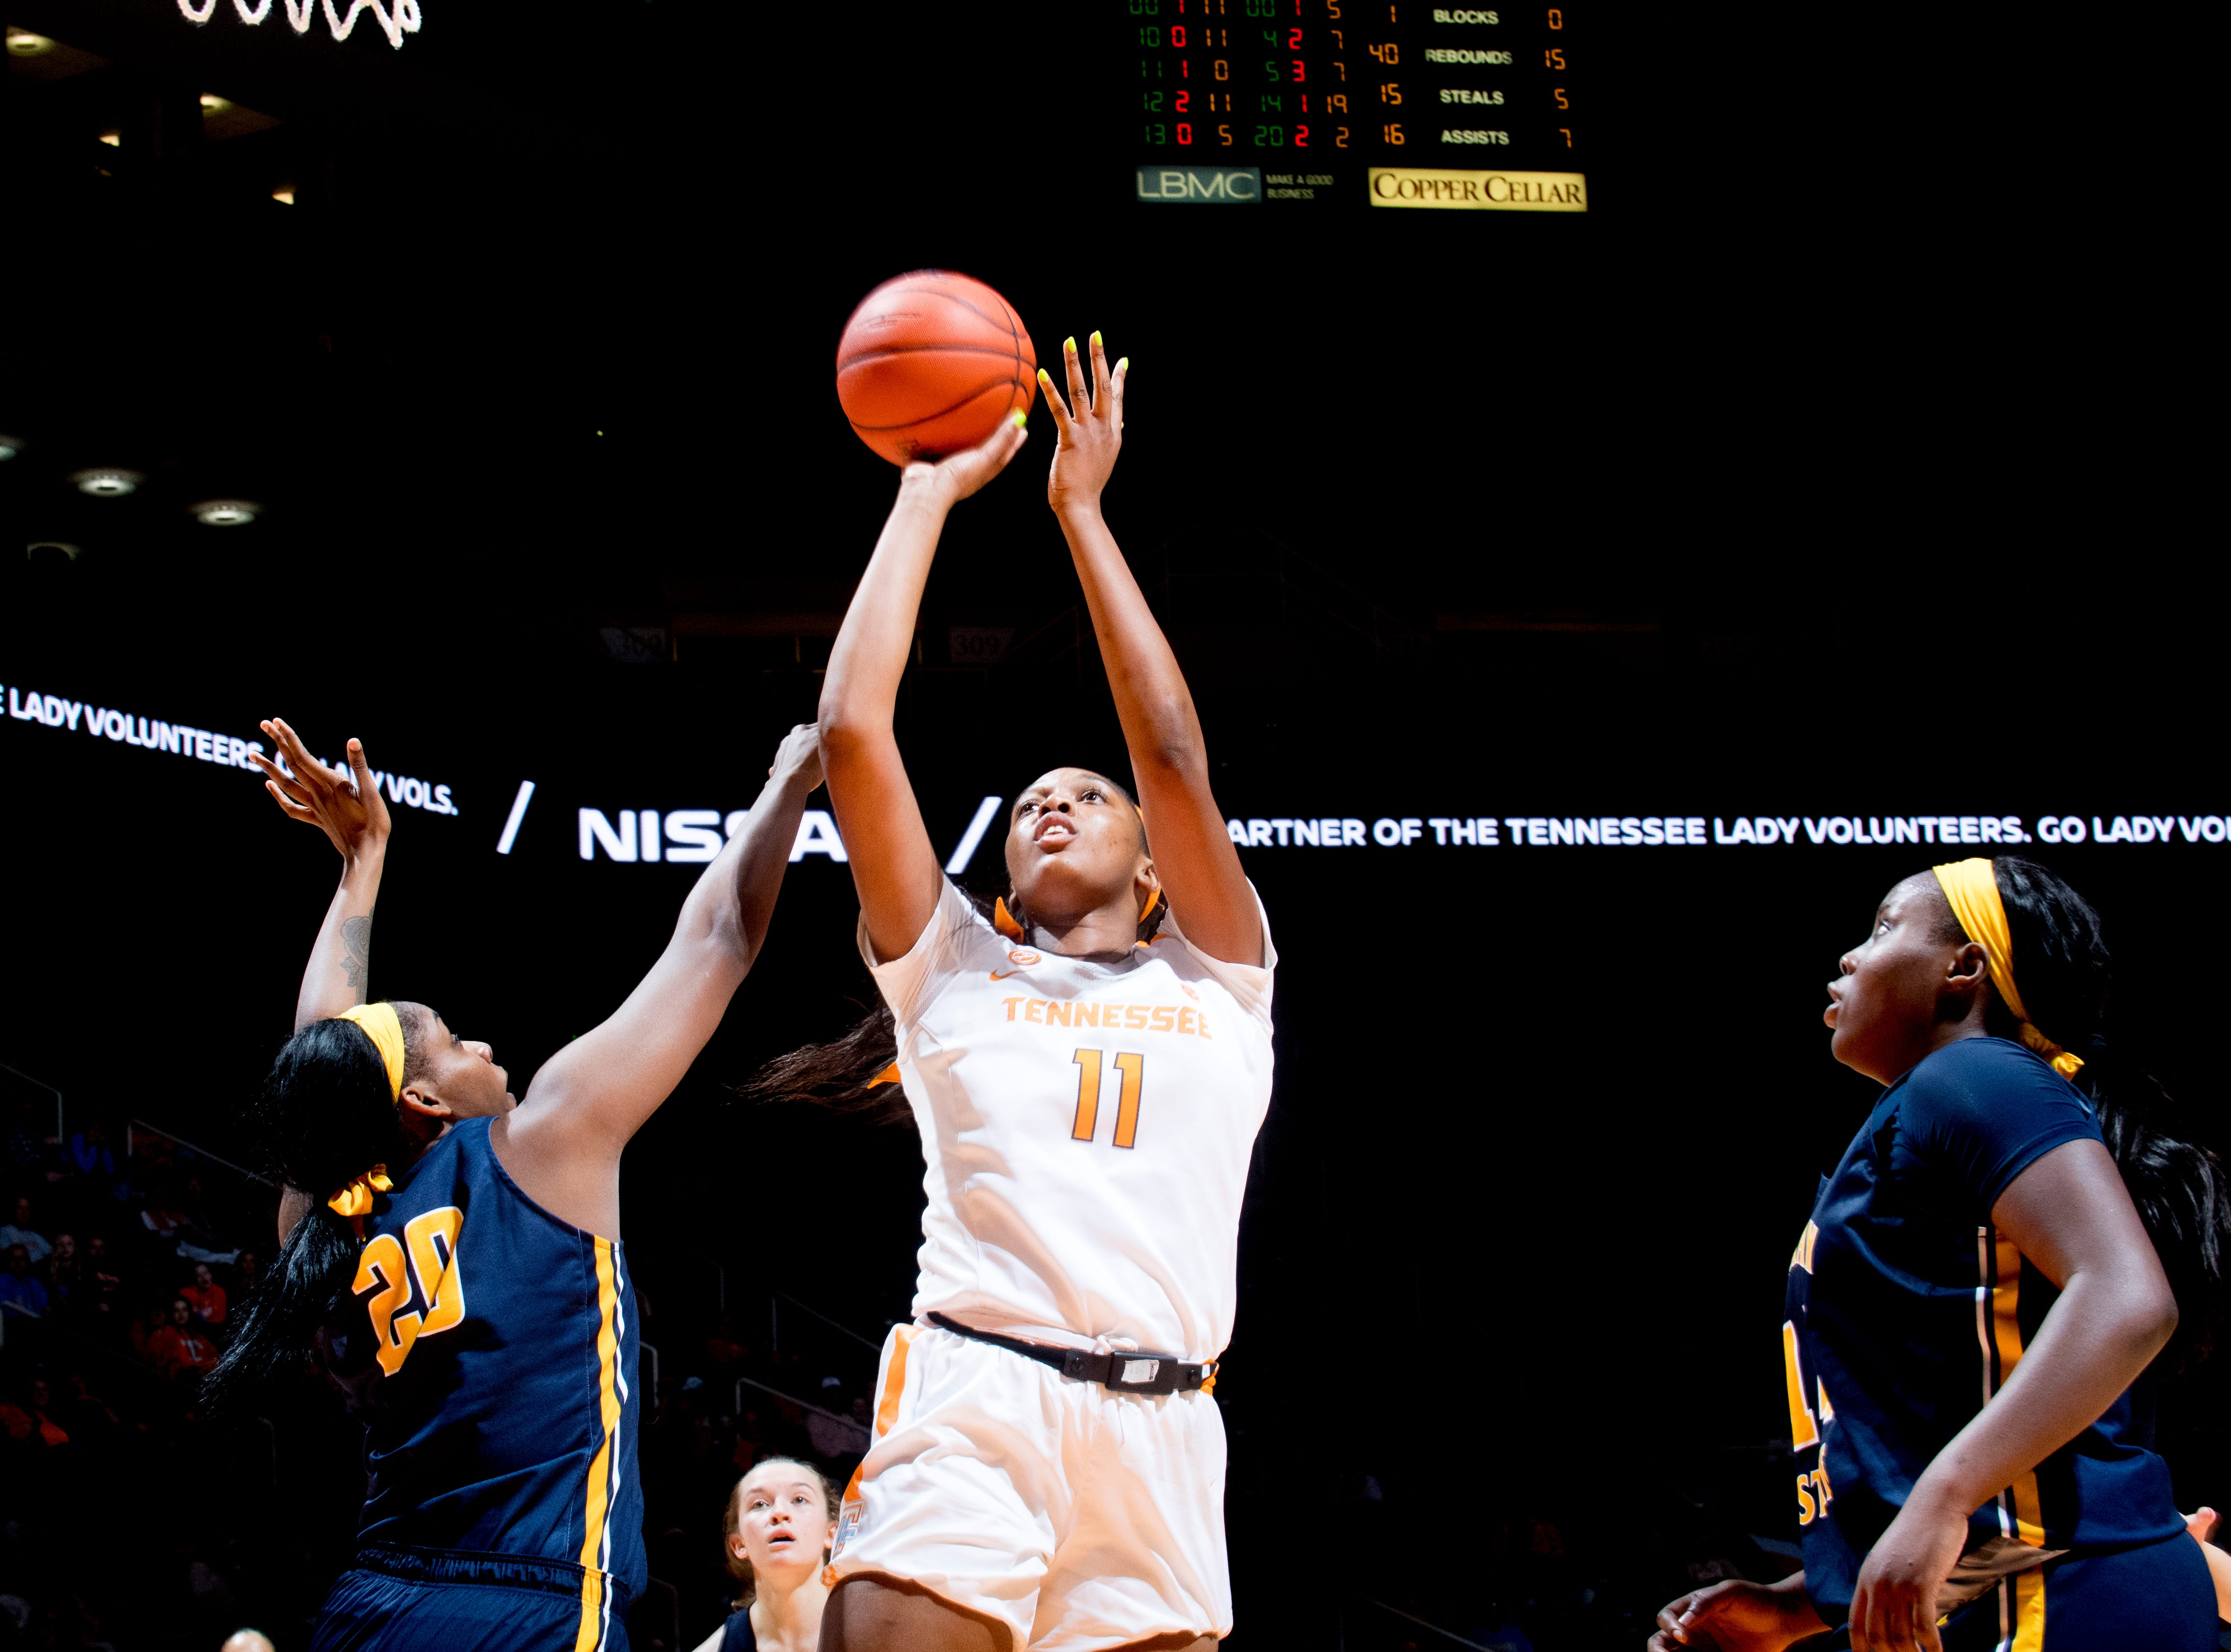 Tennessee center Kasiyahna Kushkituah (11) shoots past Murray State forward Cekeya Mack (20) during a game between the Tennessee Lady Vols and Murray State at Thompson-Boling Arena in Knoxville, Tennessee on Friday, December 28, 2018.